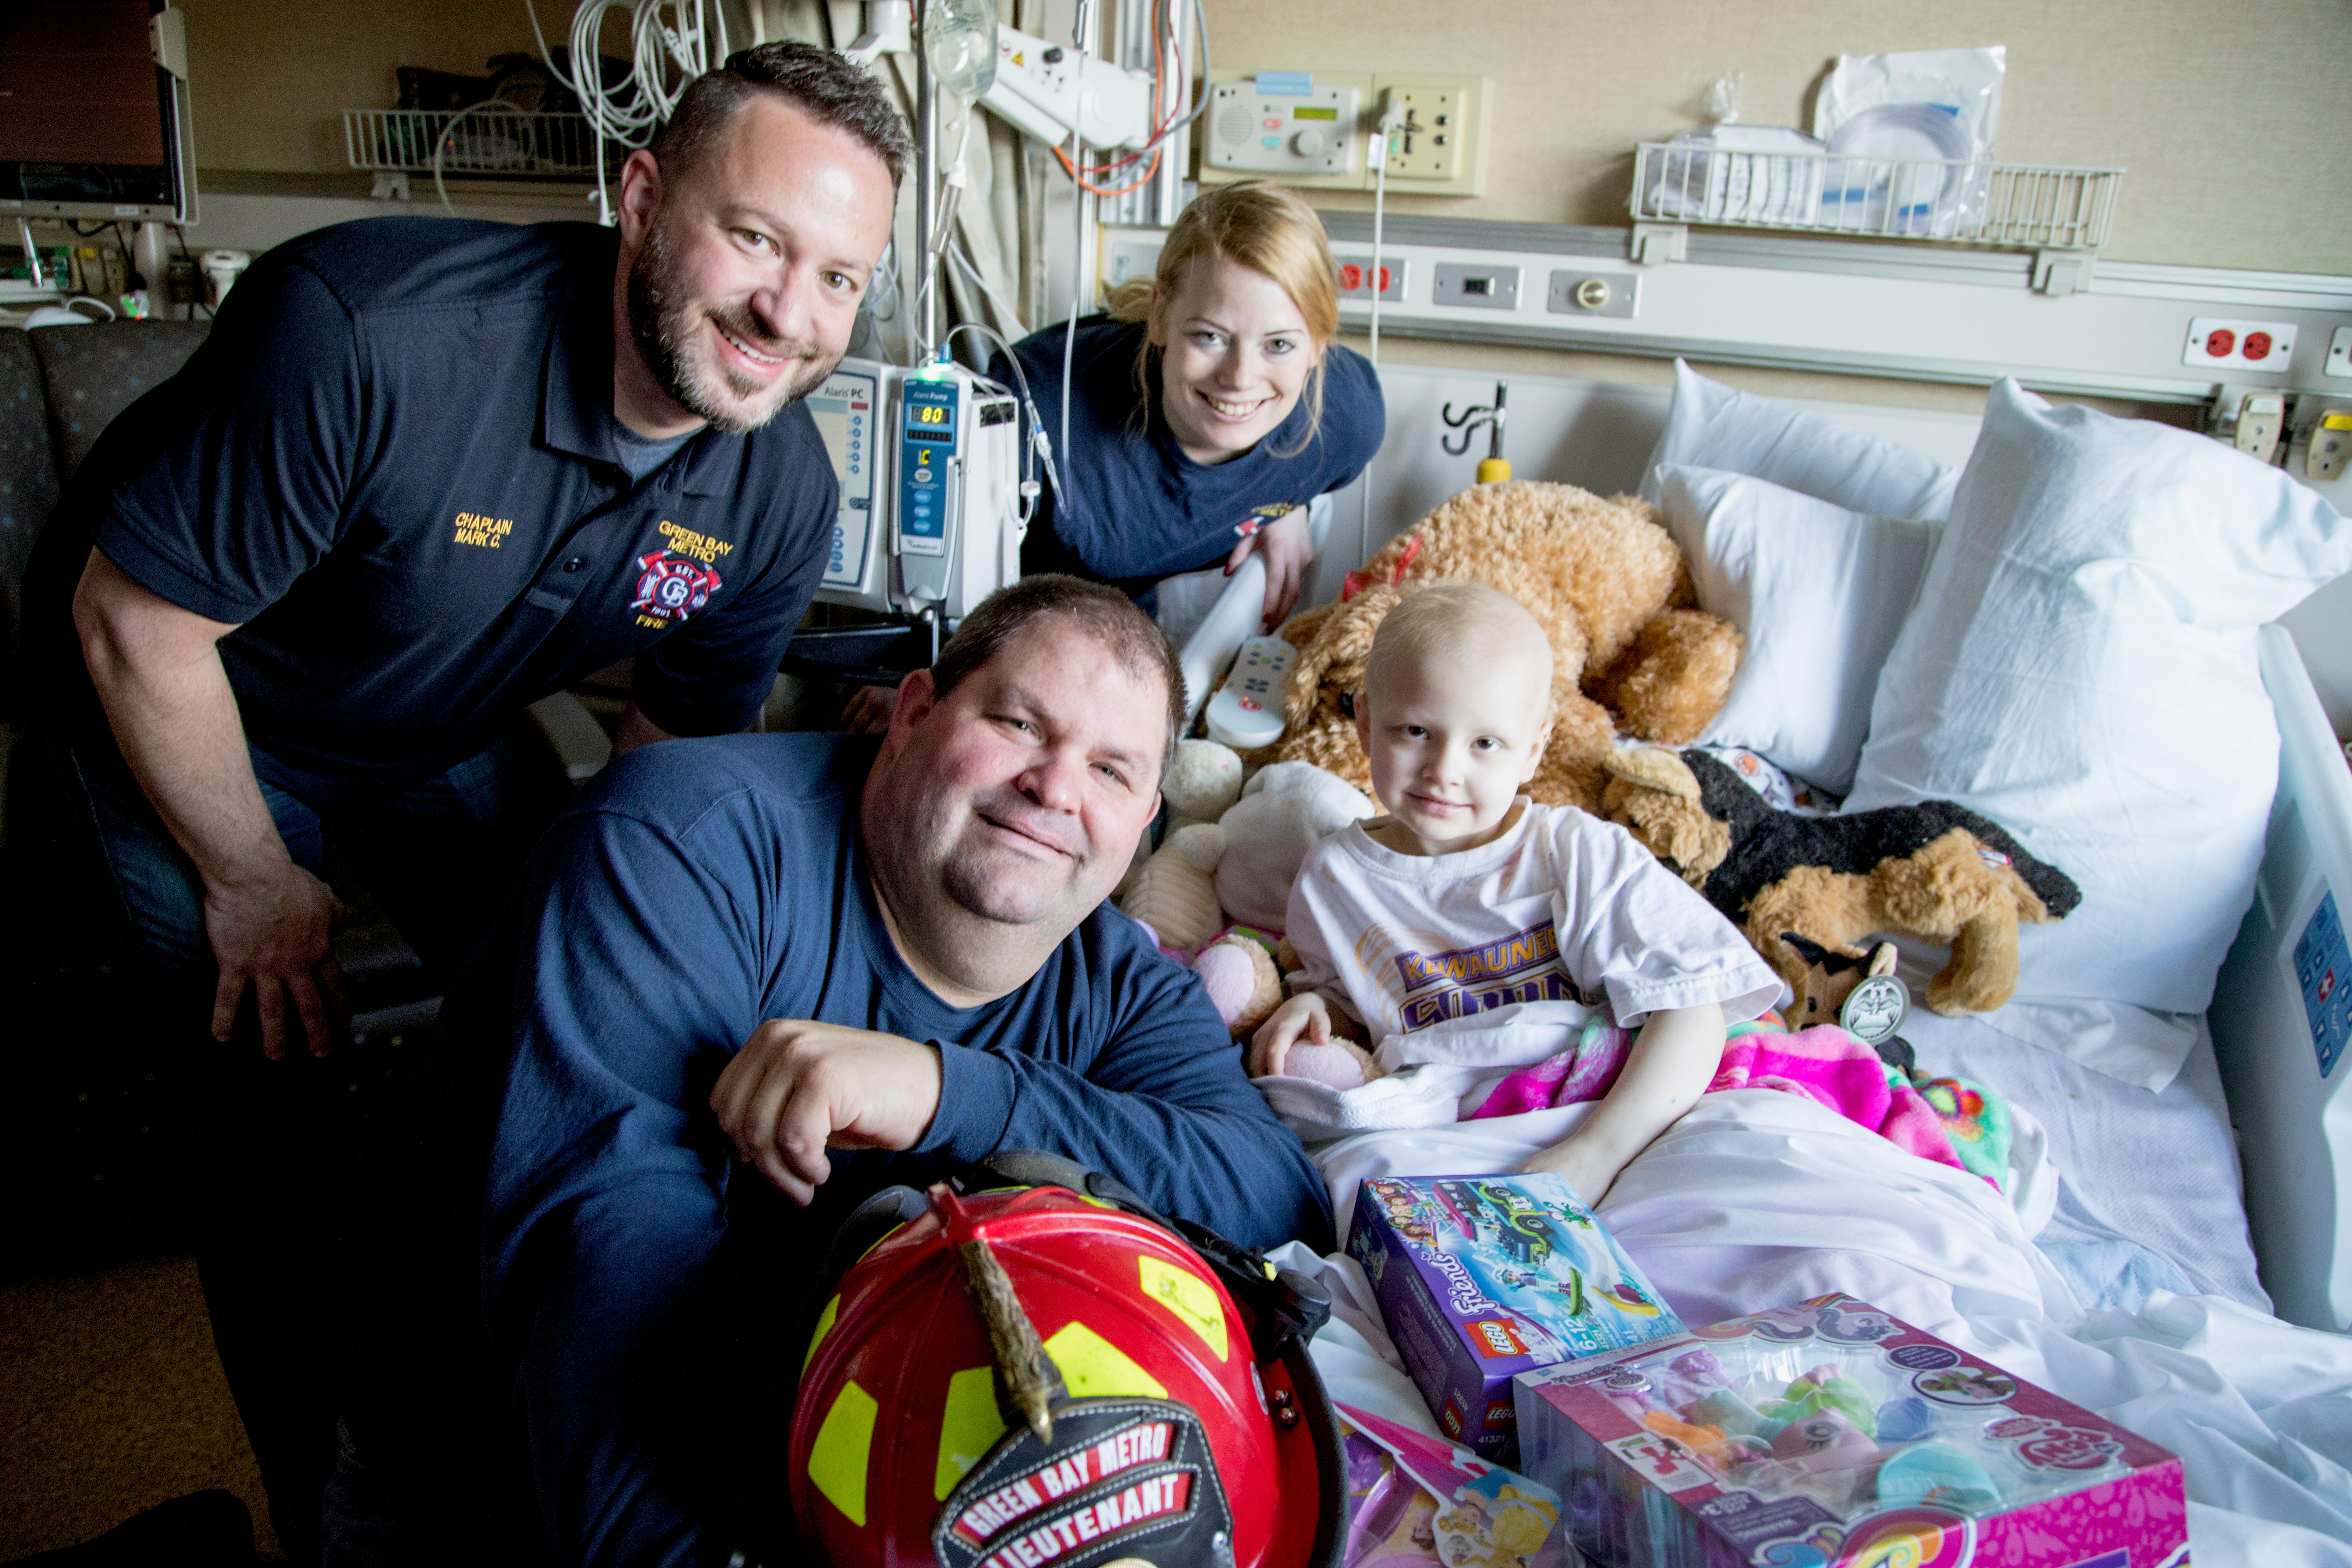 Green Bay firefighters delivered Christmas gifts to children at the HSHS St. Vincent Children's Hospital in Green Bay, December 19, 2017. (Photo courtesy of HSHS St. Vincent Children's Hospital)